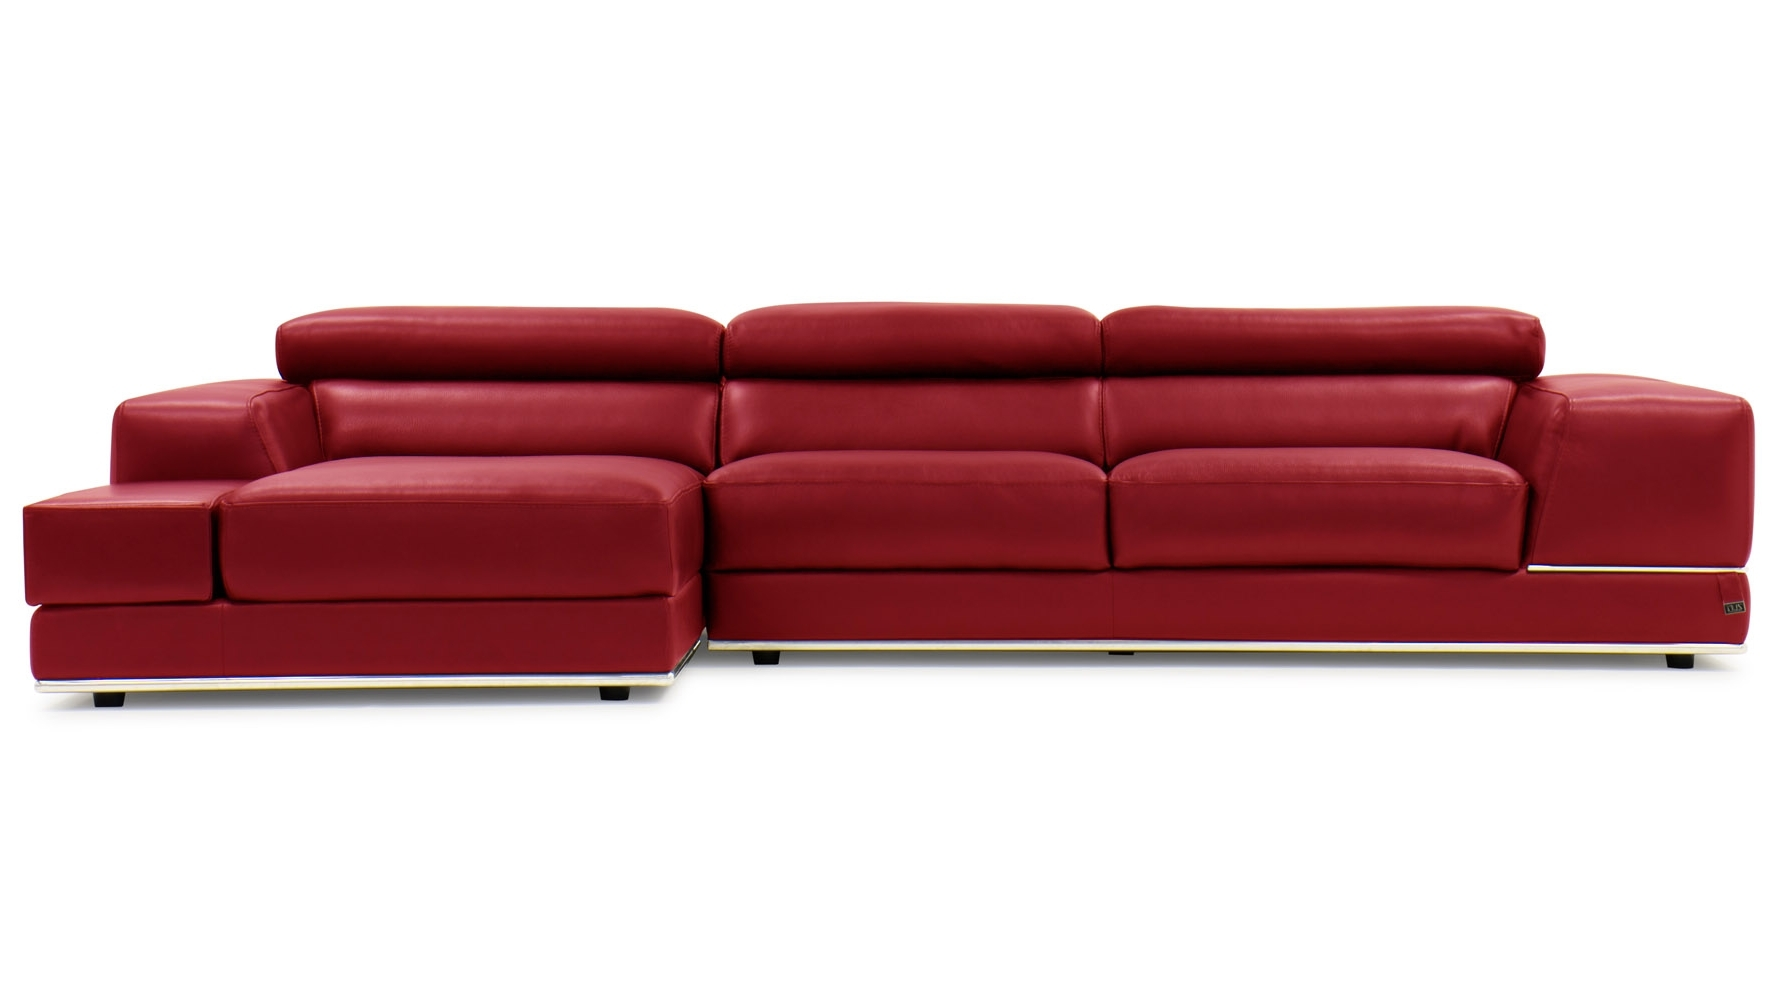 Zuri Furniture Intended For Red Leather Sofas (Gallery 7 of 20)